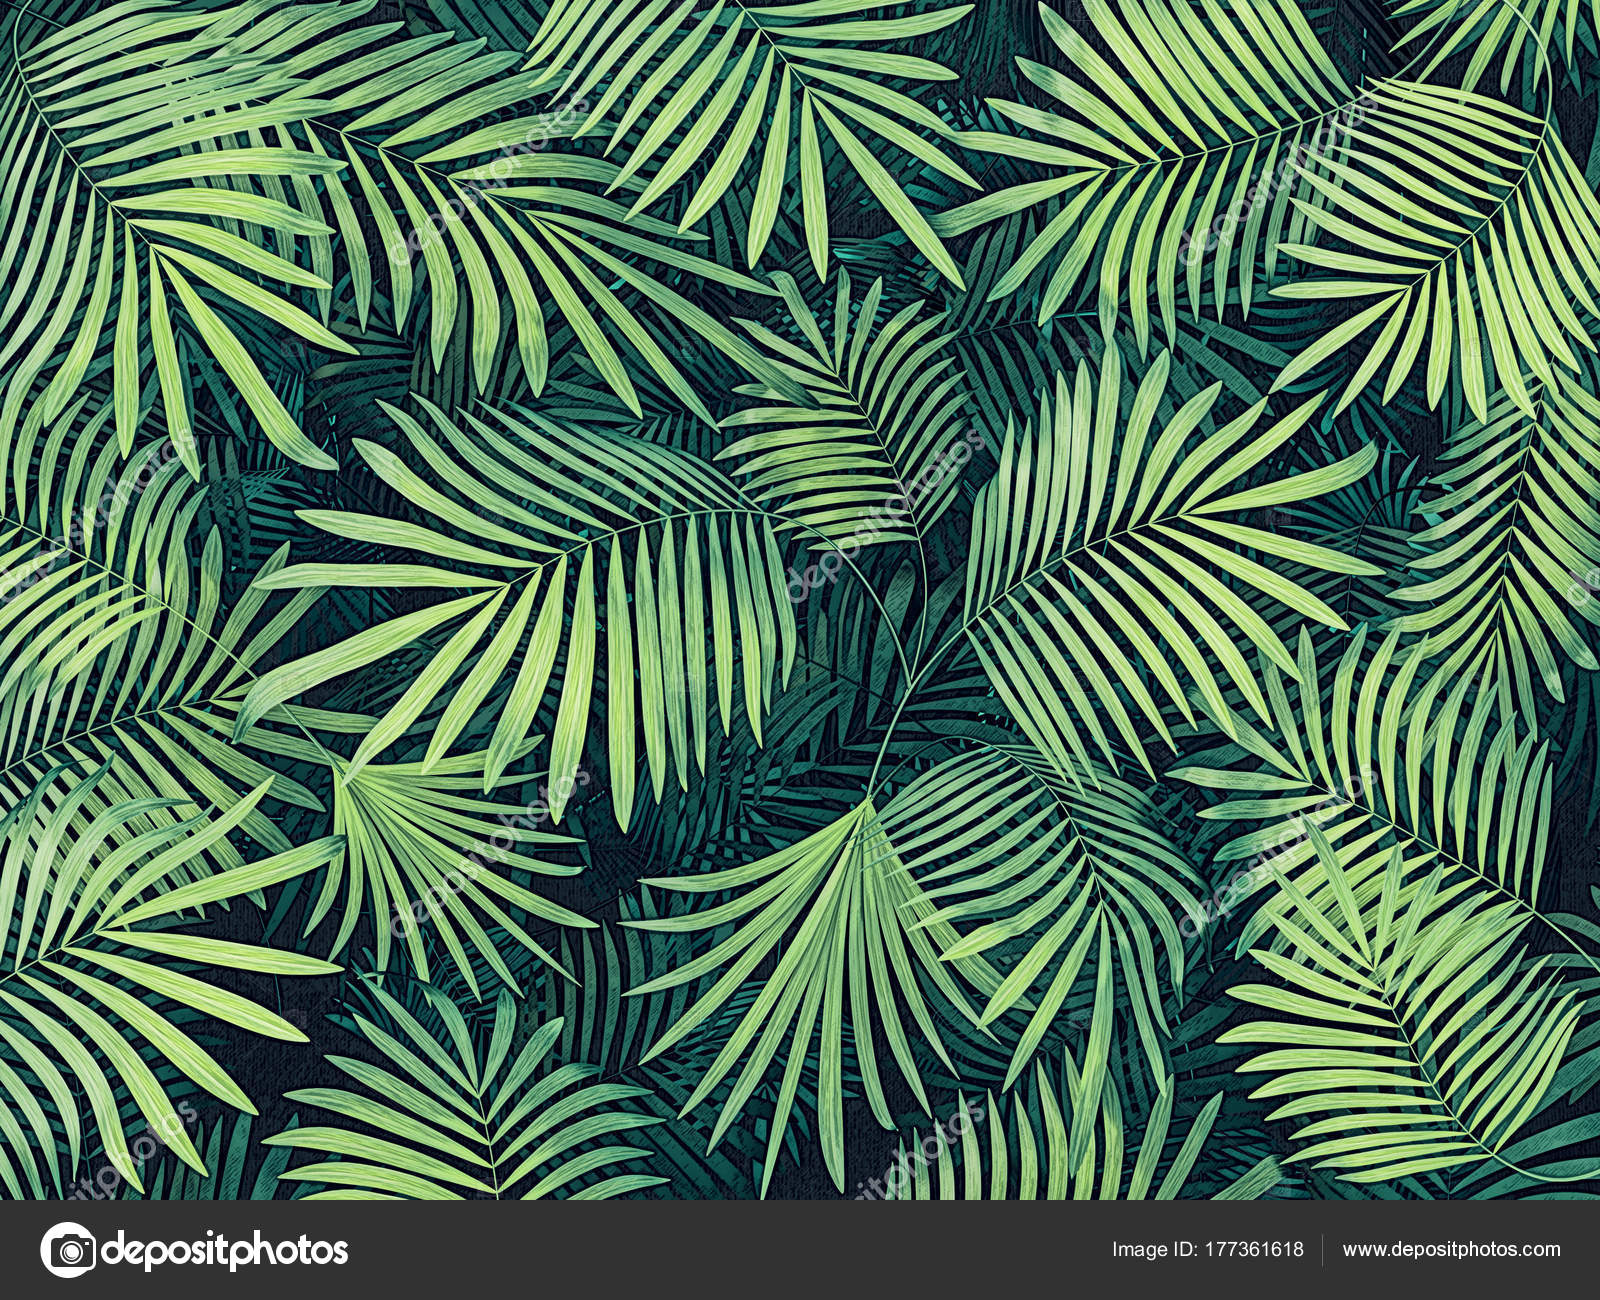 Tropical Leaves Background Stock Photo C Alexroz 177361618 To get more templates about posters,flyers,brochures,card,mockup,logo,video,sound,ppt,word,please visit. https depositphotos com 177361618 stock photo tropical leaves background html